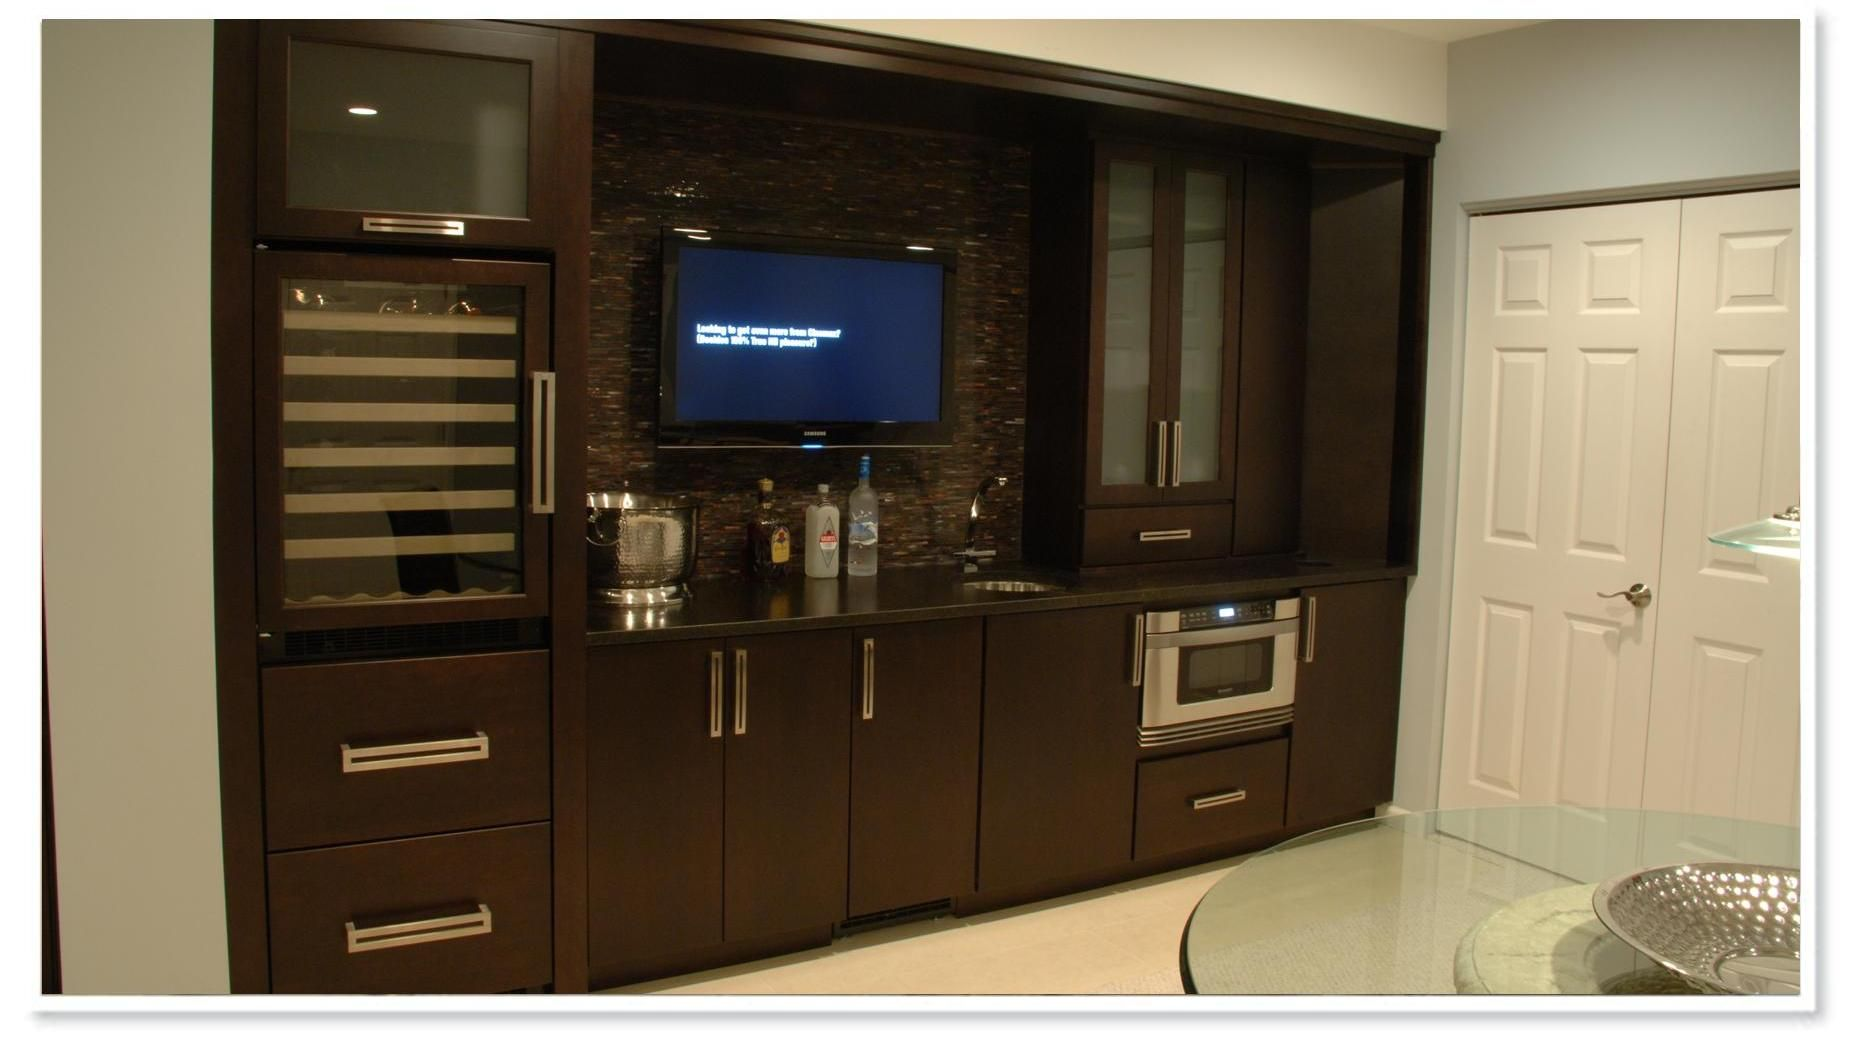 Wall Mounted Bar Cabinet For Home Designs Ideas    Http://www.swtorgoldme.com/wall Mounted Bar Cabinet For Home Designs Ideas/  : #BarCabinet Improveu2026